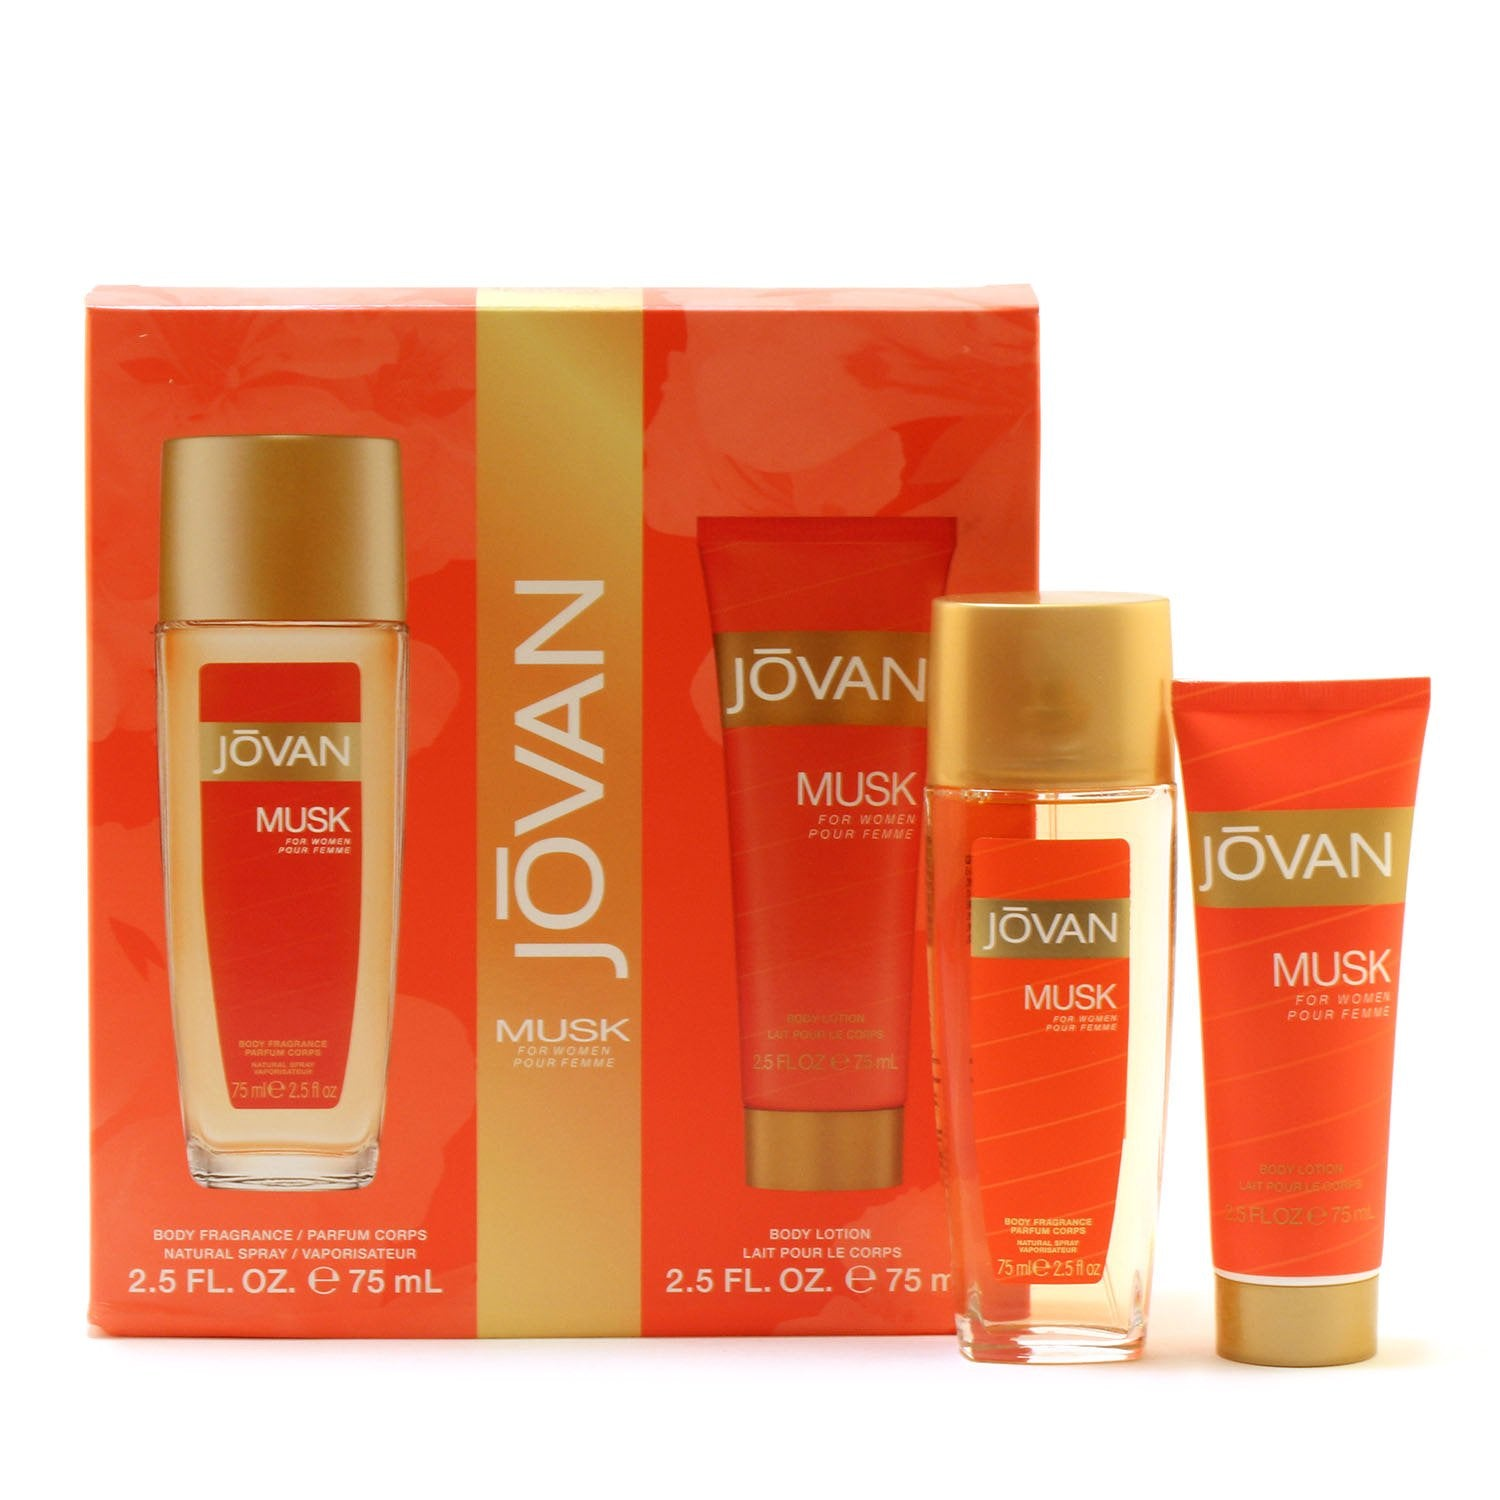 Perfume Sets - JOVAN MUSK FOR WOMEN - TRAVEL GIFT SET